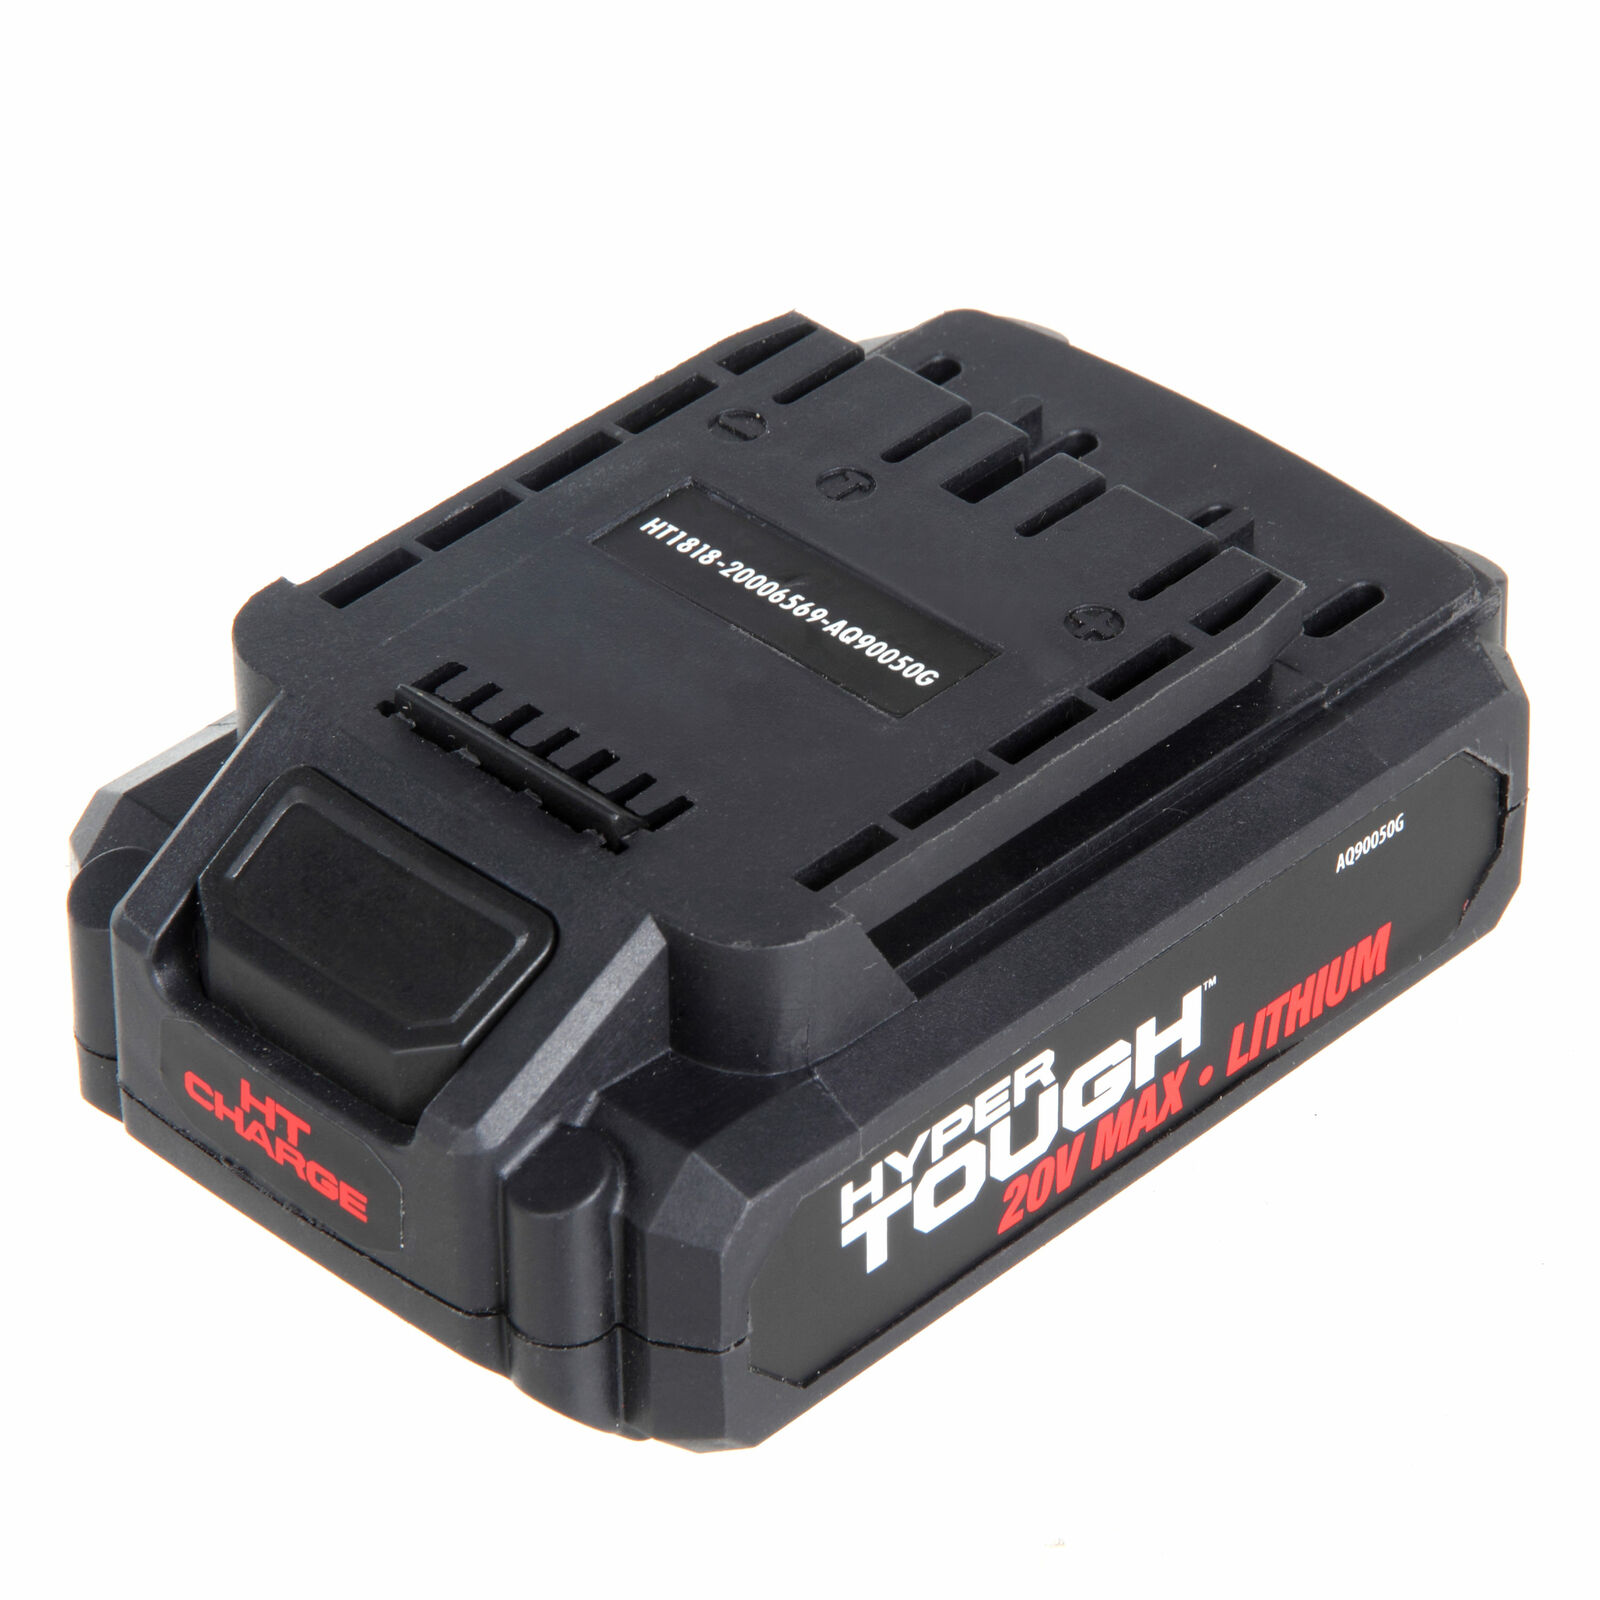 Hyper Tough  20-Volt 2.0-Amp Lithium-Ion Battery